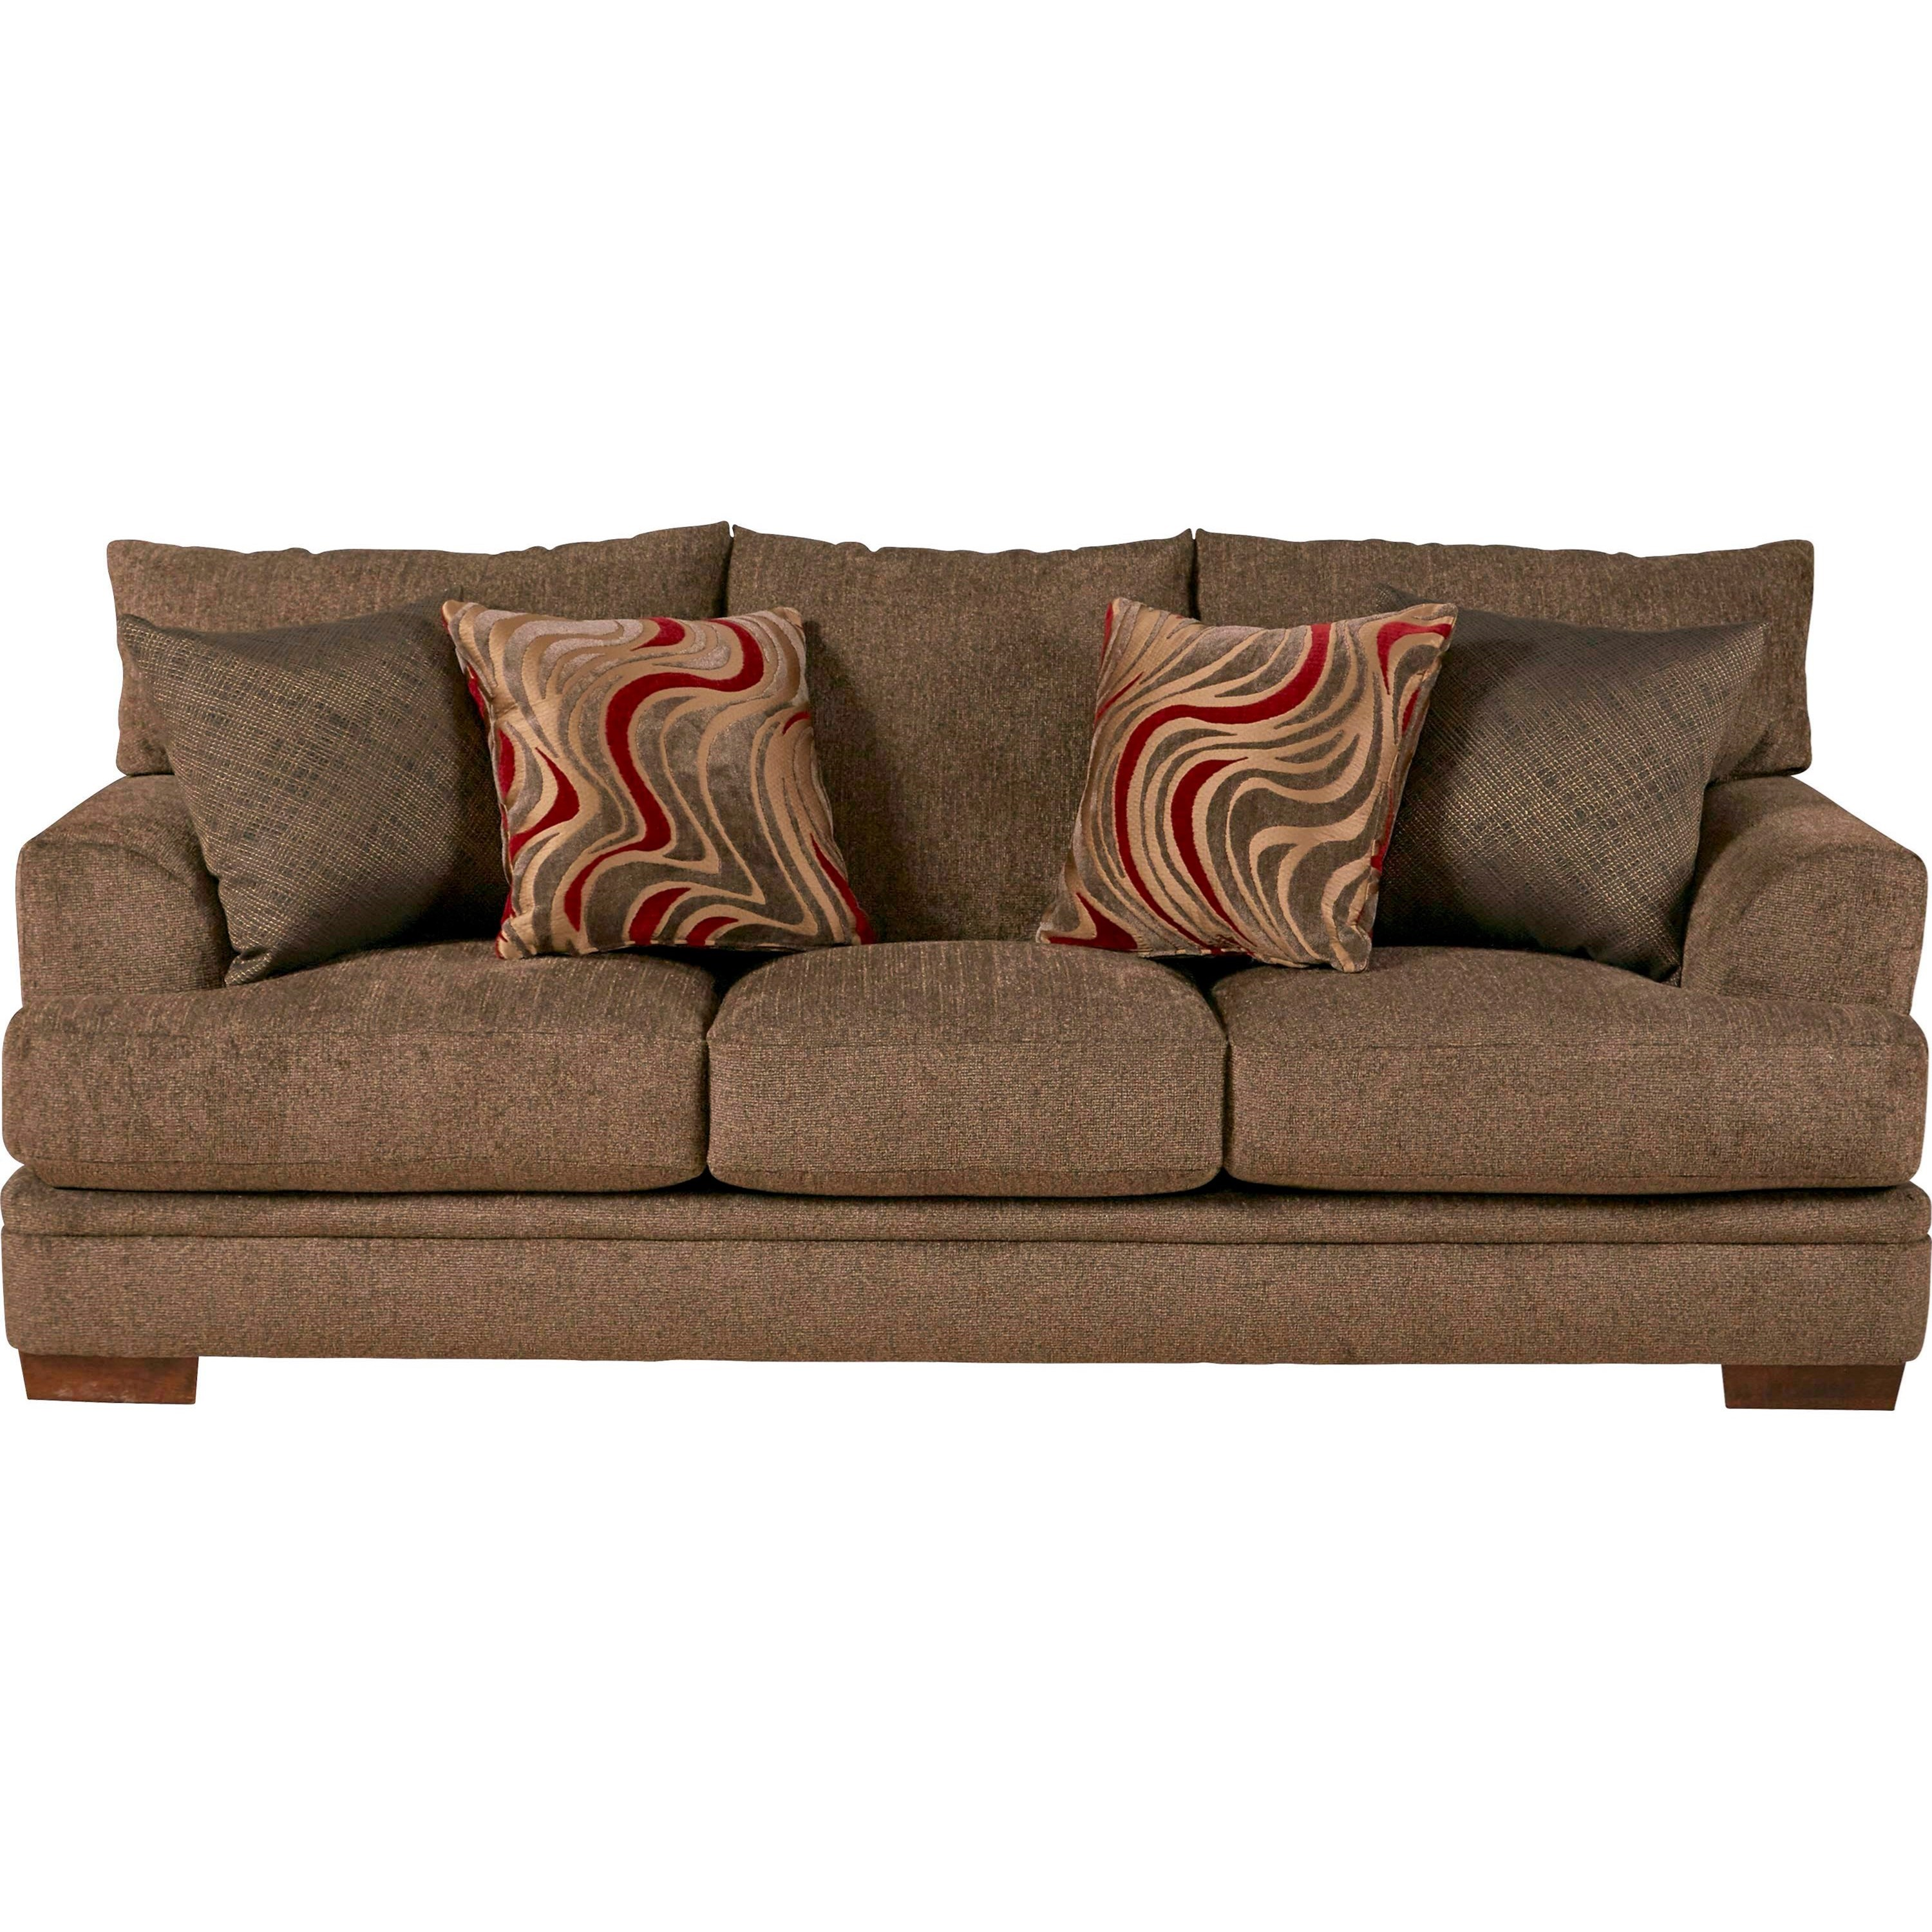 Jackson Furniture Crompton Sofa with Casual Style Wayside